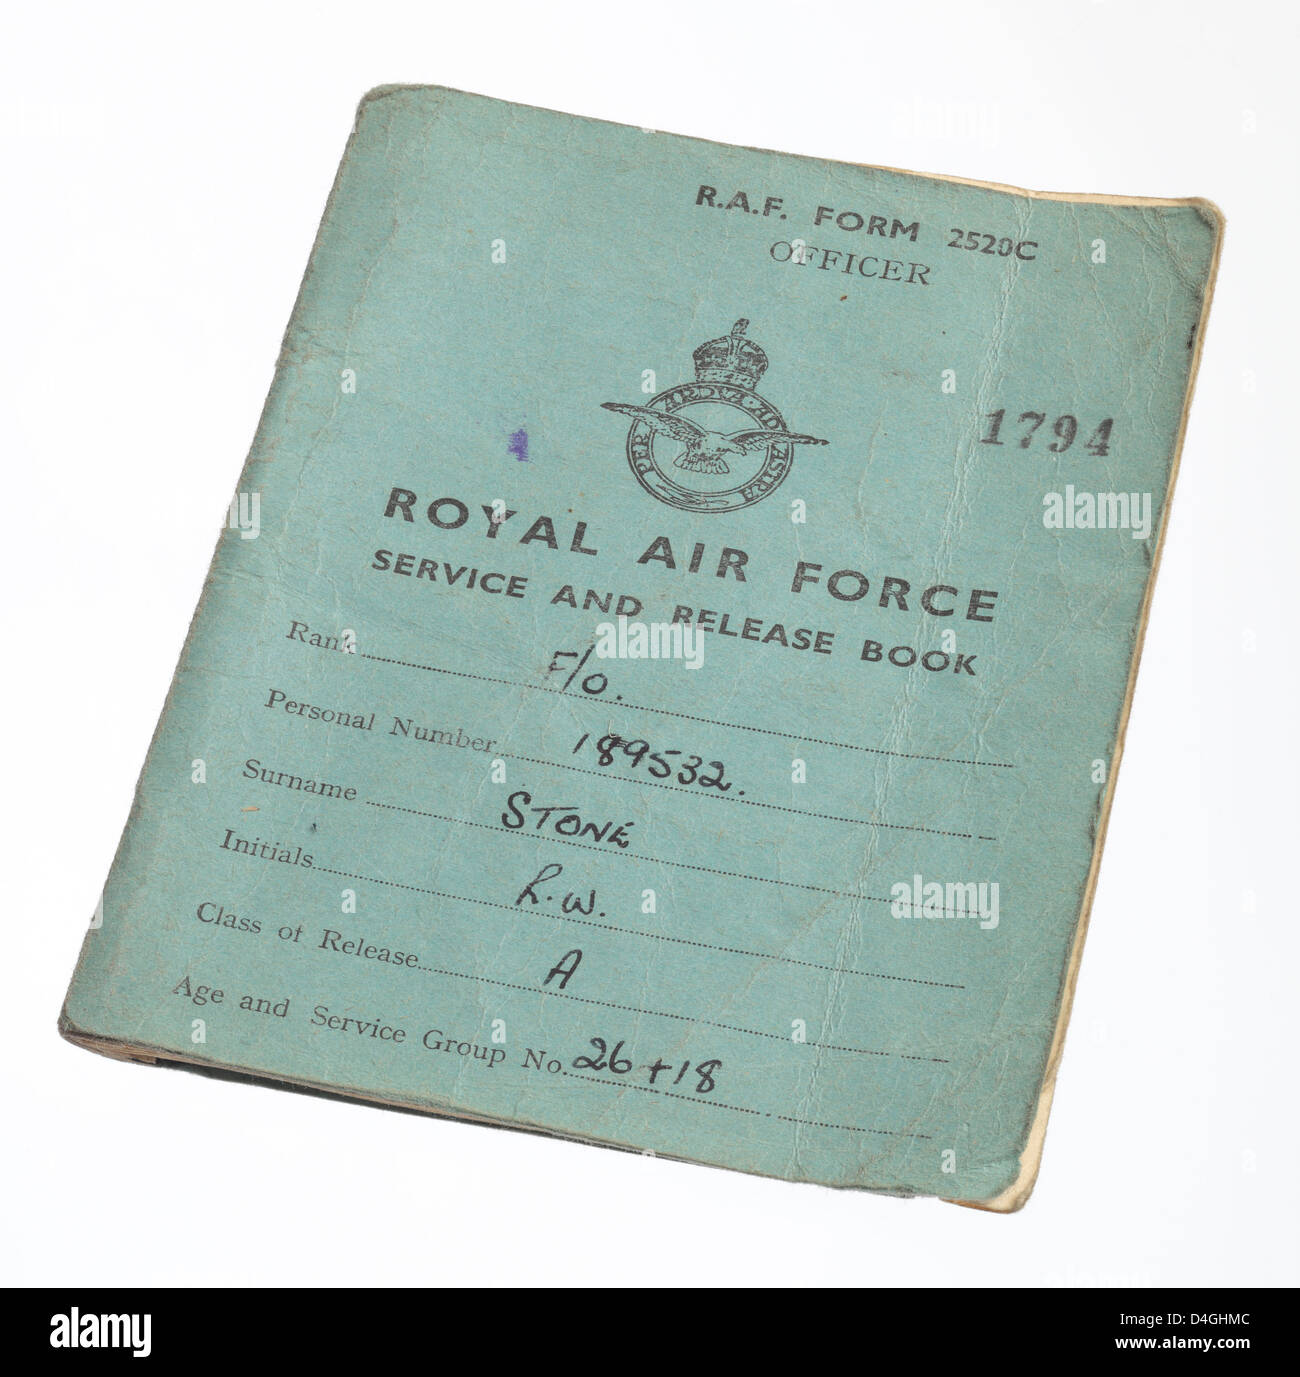 Royal Air Force or R.A.F. Service and Release book from the Second World War. - Stock Image